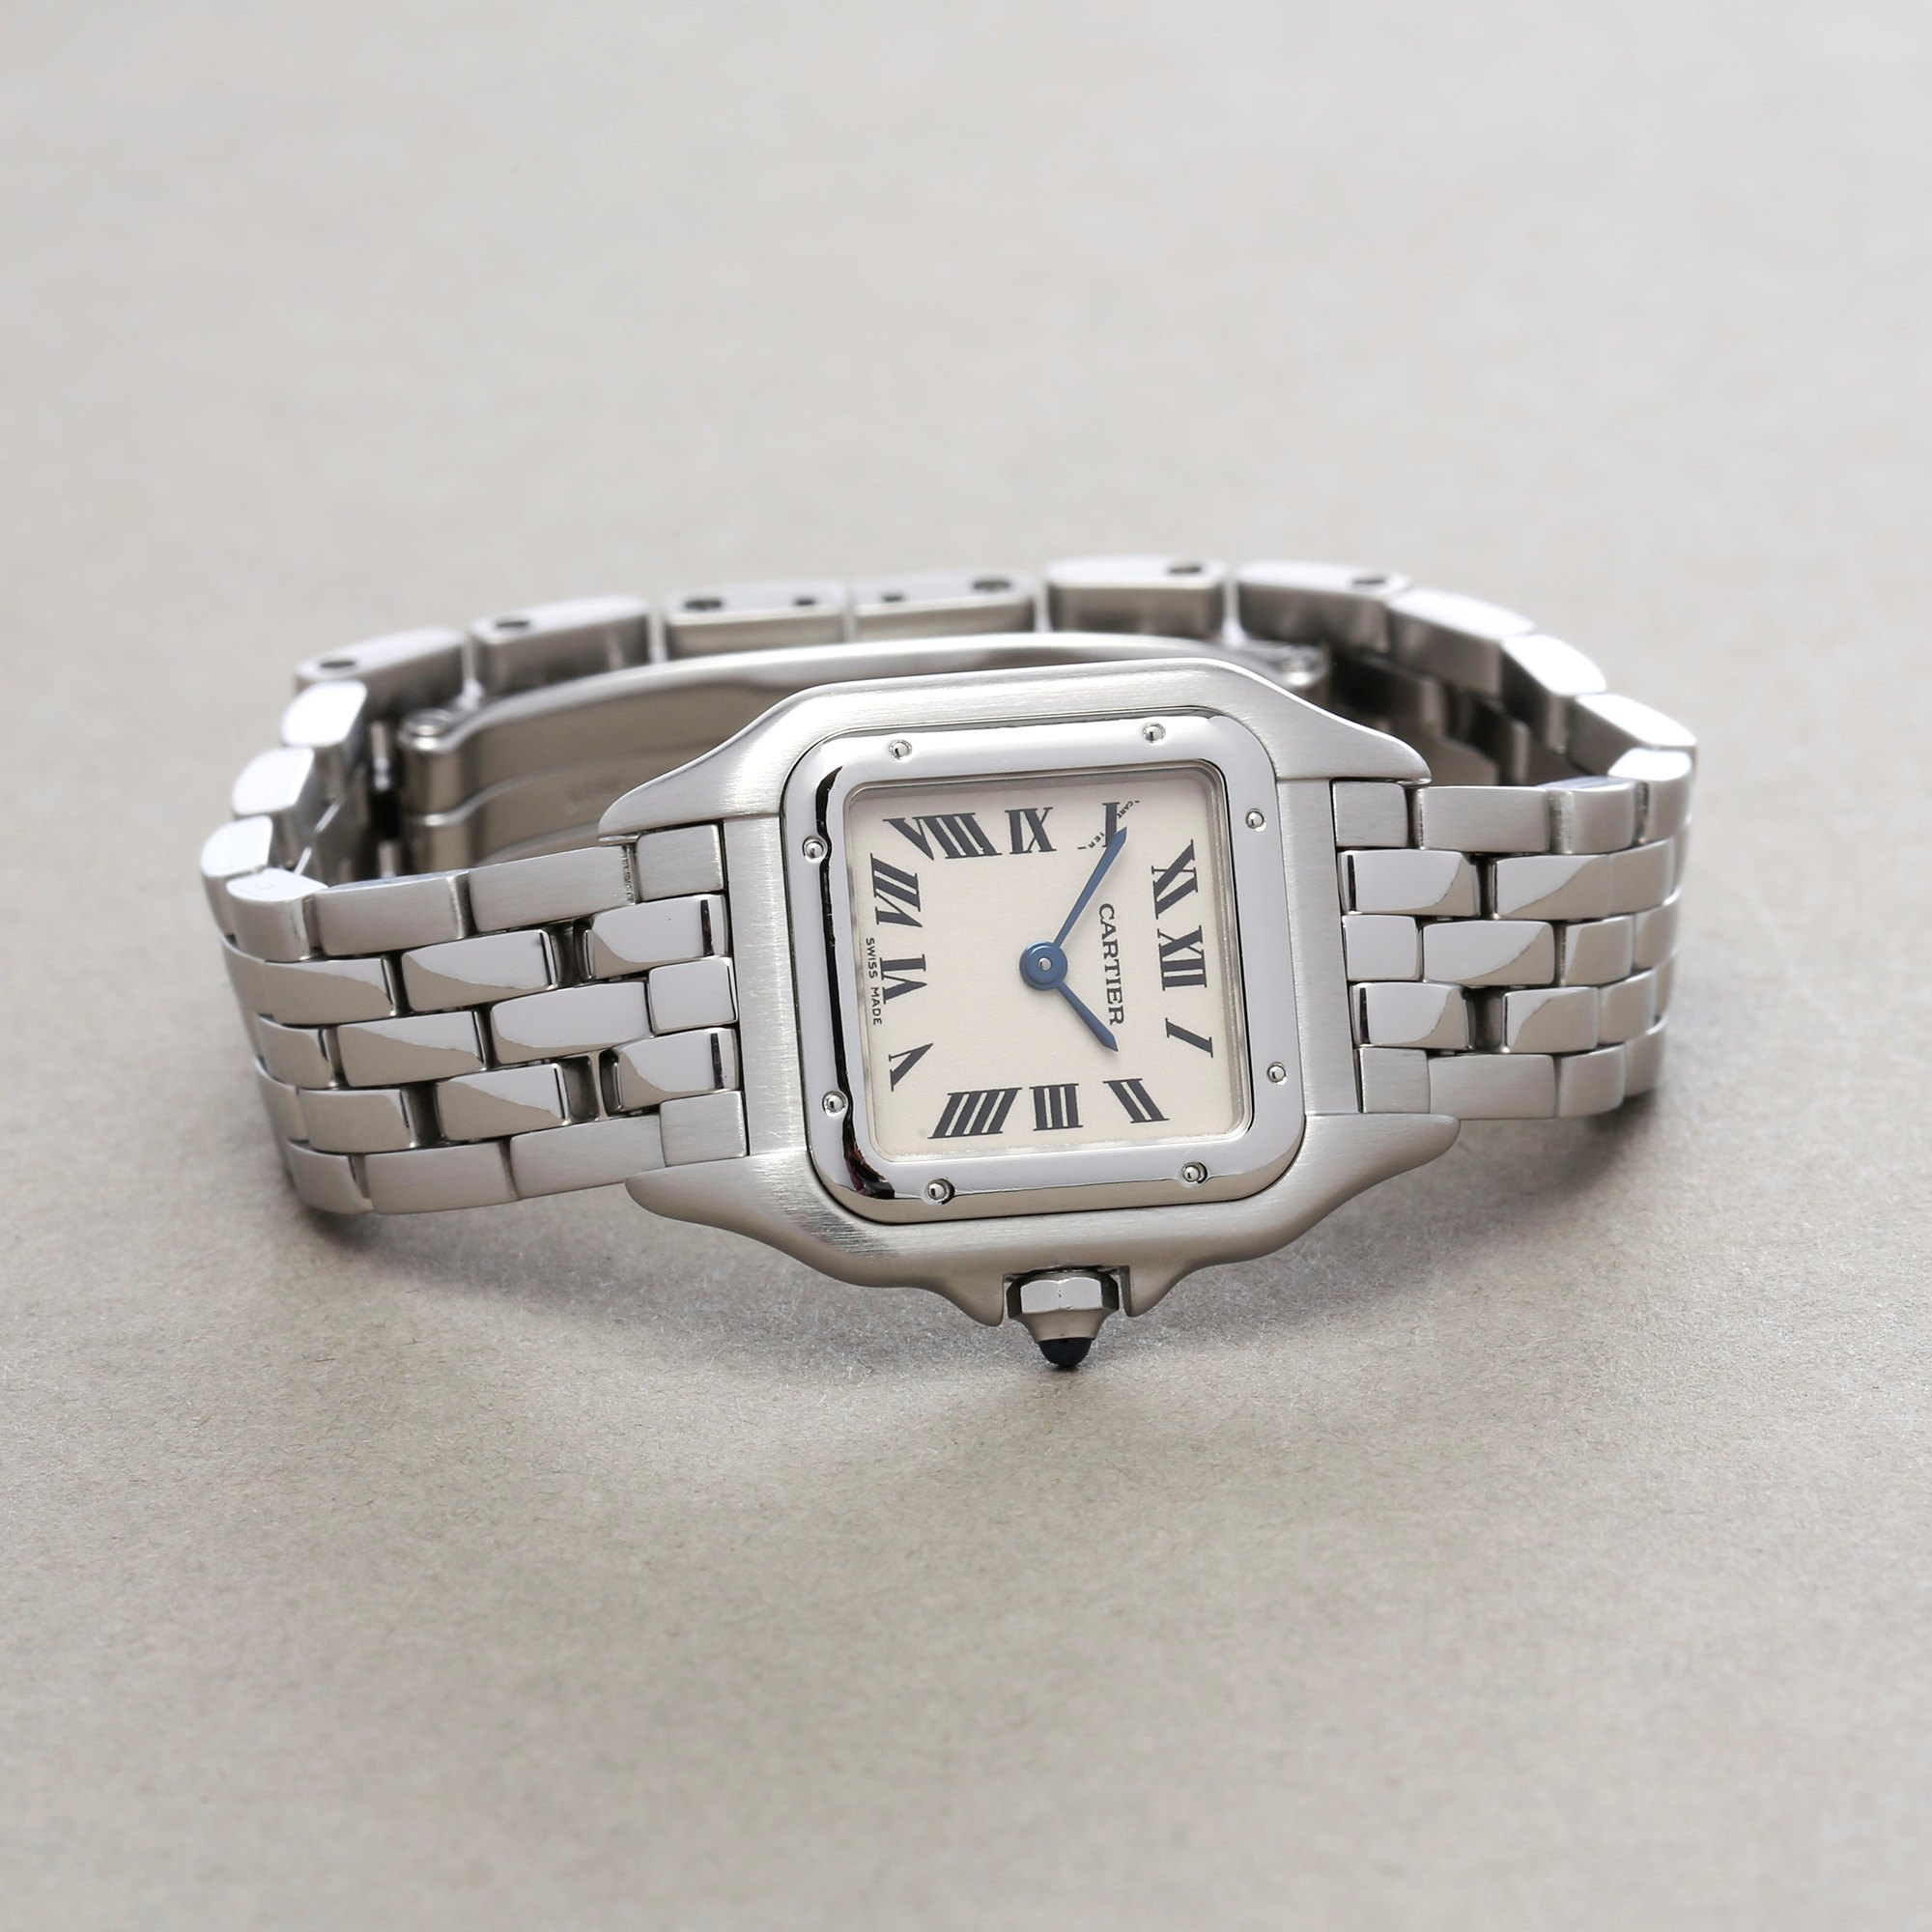 Cartier Panthère 1320 Ladies Stainless Steel Watch - Image 6 of 10